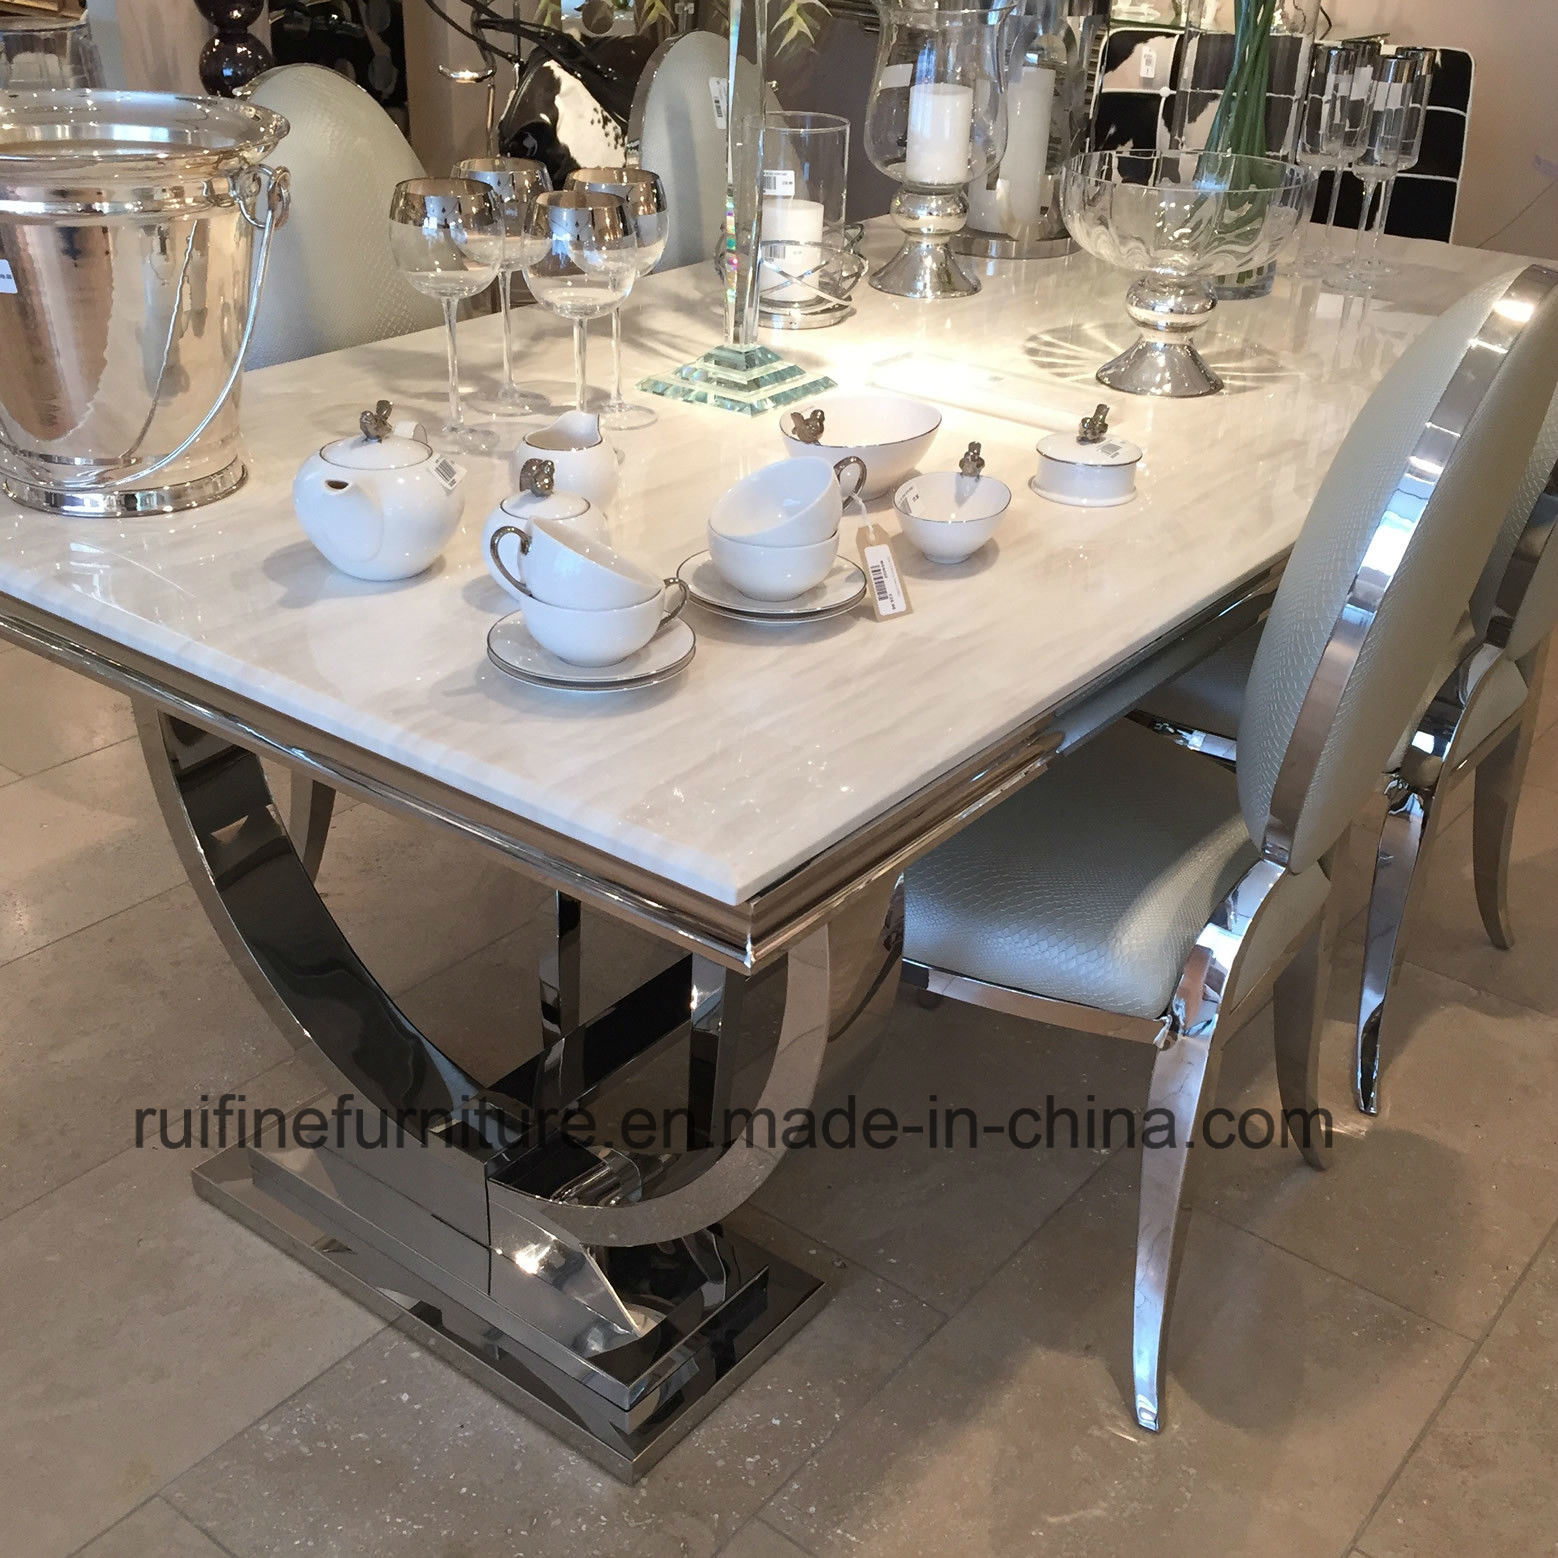 China Modern Luxury Chrome Nature Marble Top Arianna Dining Table And Leather Chair China Dining Table Chair Marble Dining Table